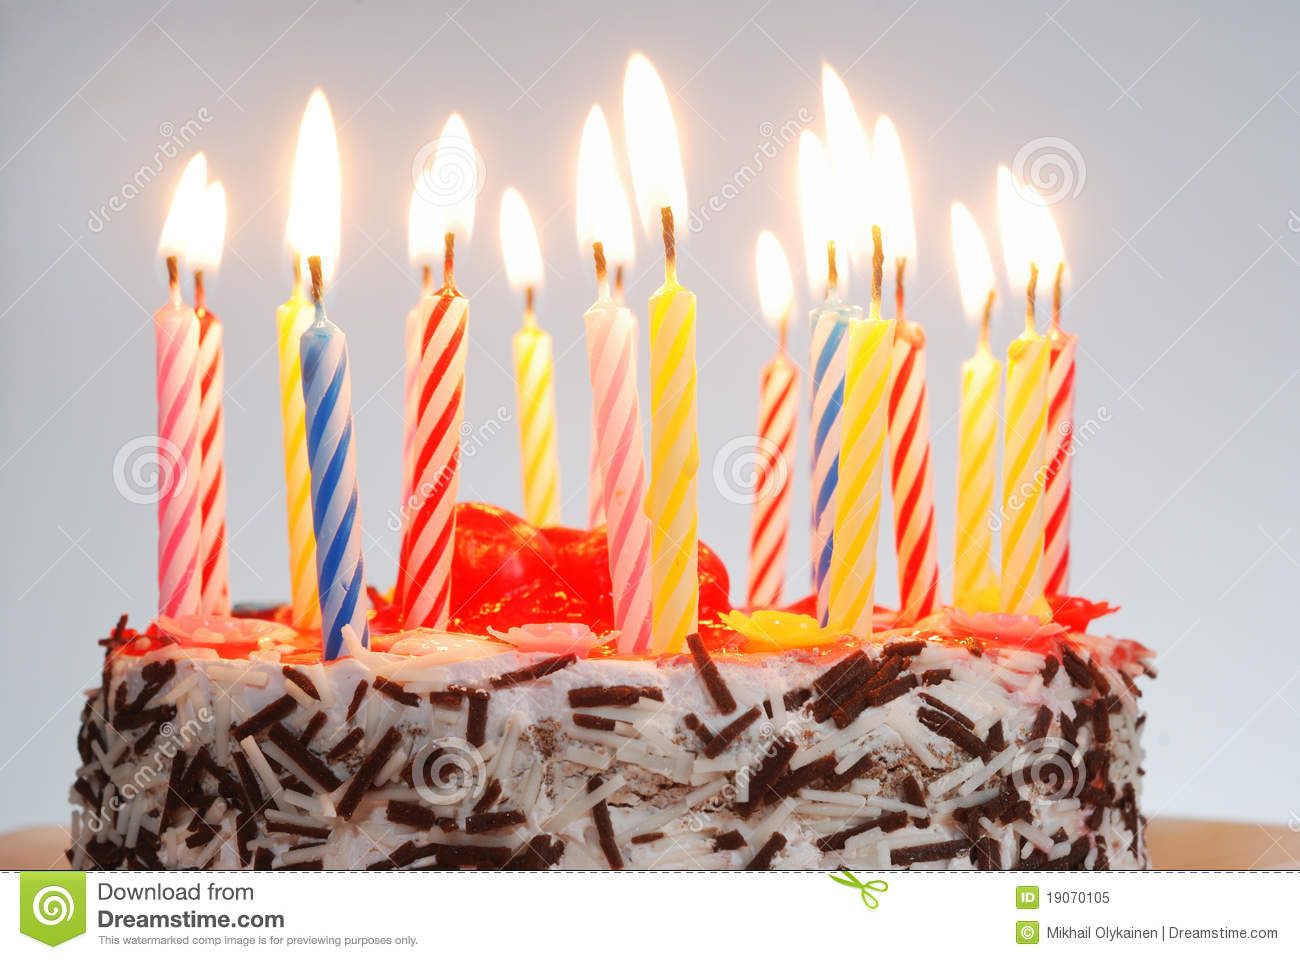 A Birthday Cake With Lighted Candles Royalty Free Stock